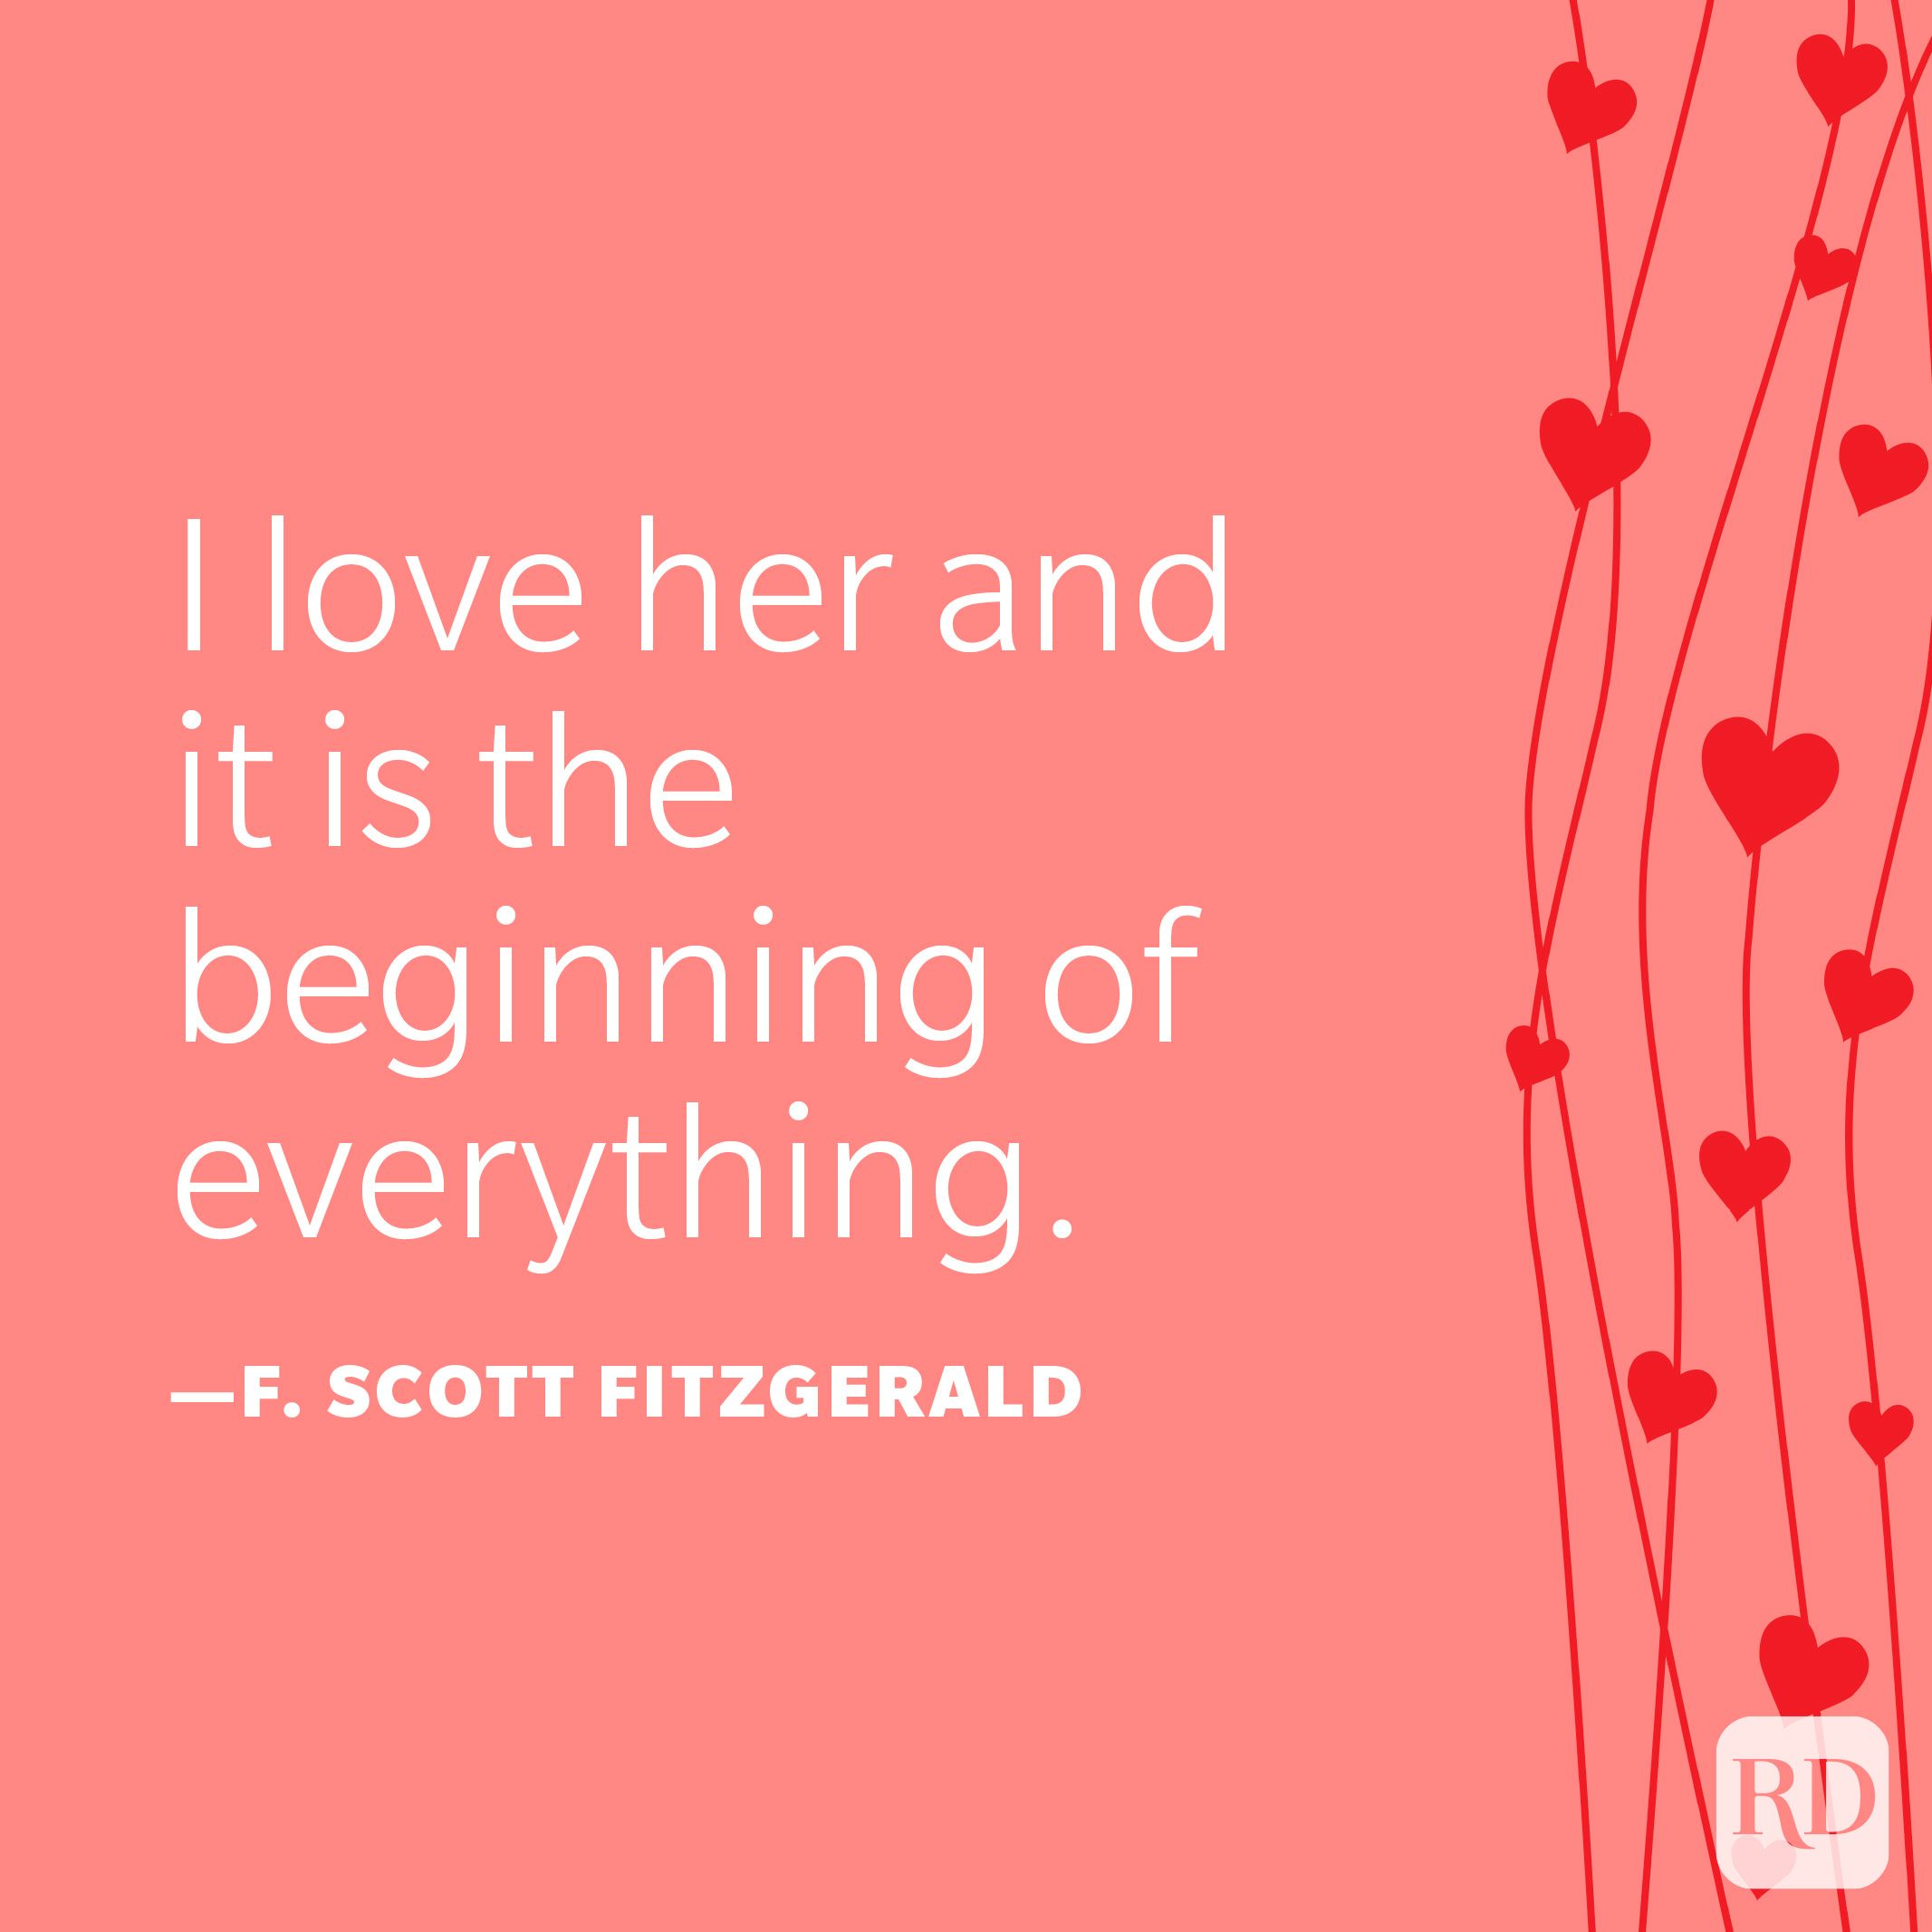 """""""I fell in love with her courage, her sincerity, and her flaming self respect. And it's these things I'd believe in, even if the whole world indulged in wild suspicions that she wasn't all she should be. I love her and it is the beginning of everything."""" —F. Scott Fitzgerald"""